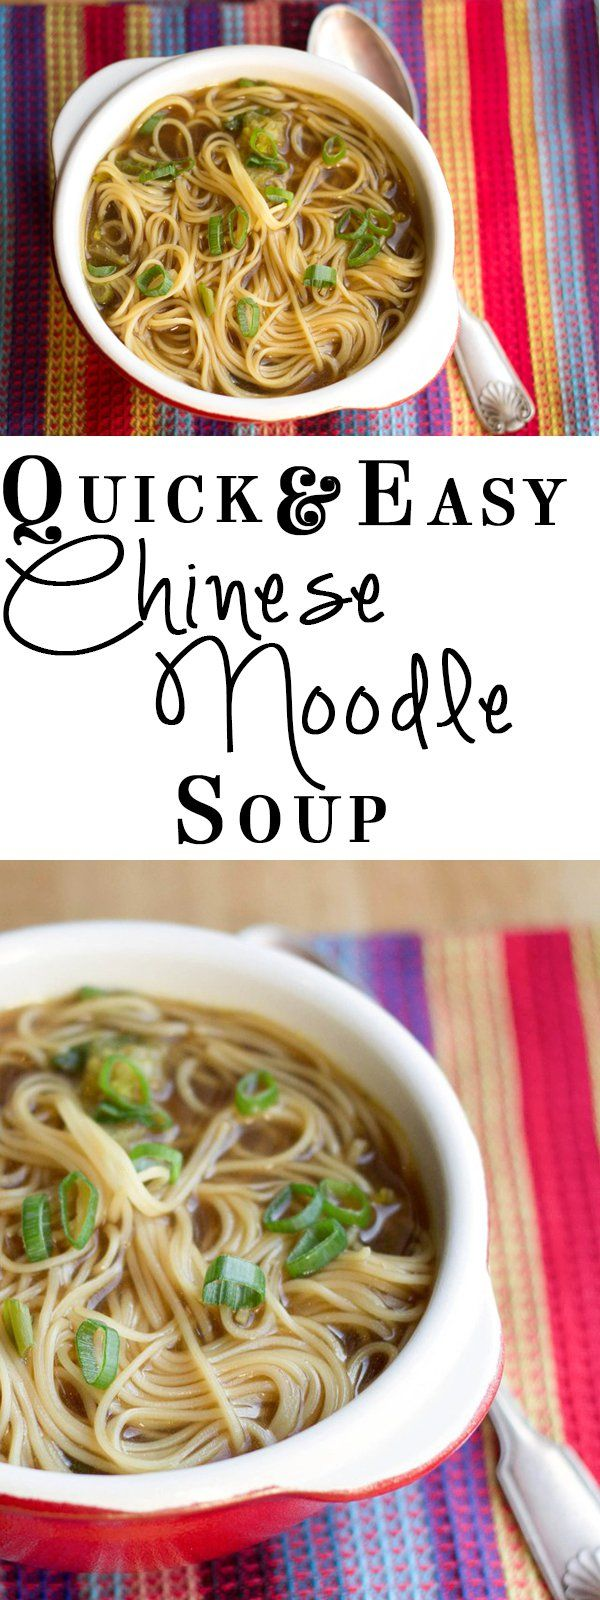 QUICK & EASY CHINESE NOODLE SOUP - Erren's Kitchen - This recipe is not only quick and easy, but it's delicious too! If you make this soup, you'll never make the instant kind again!